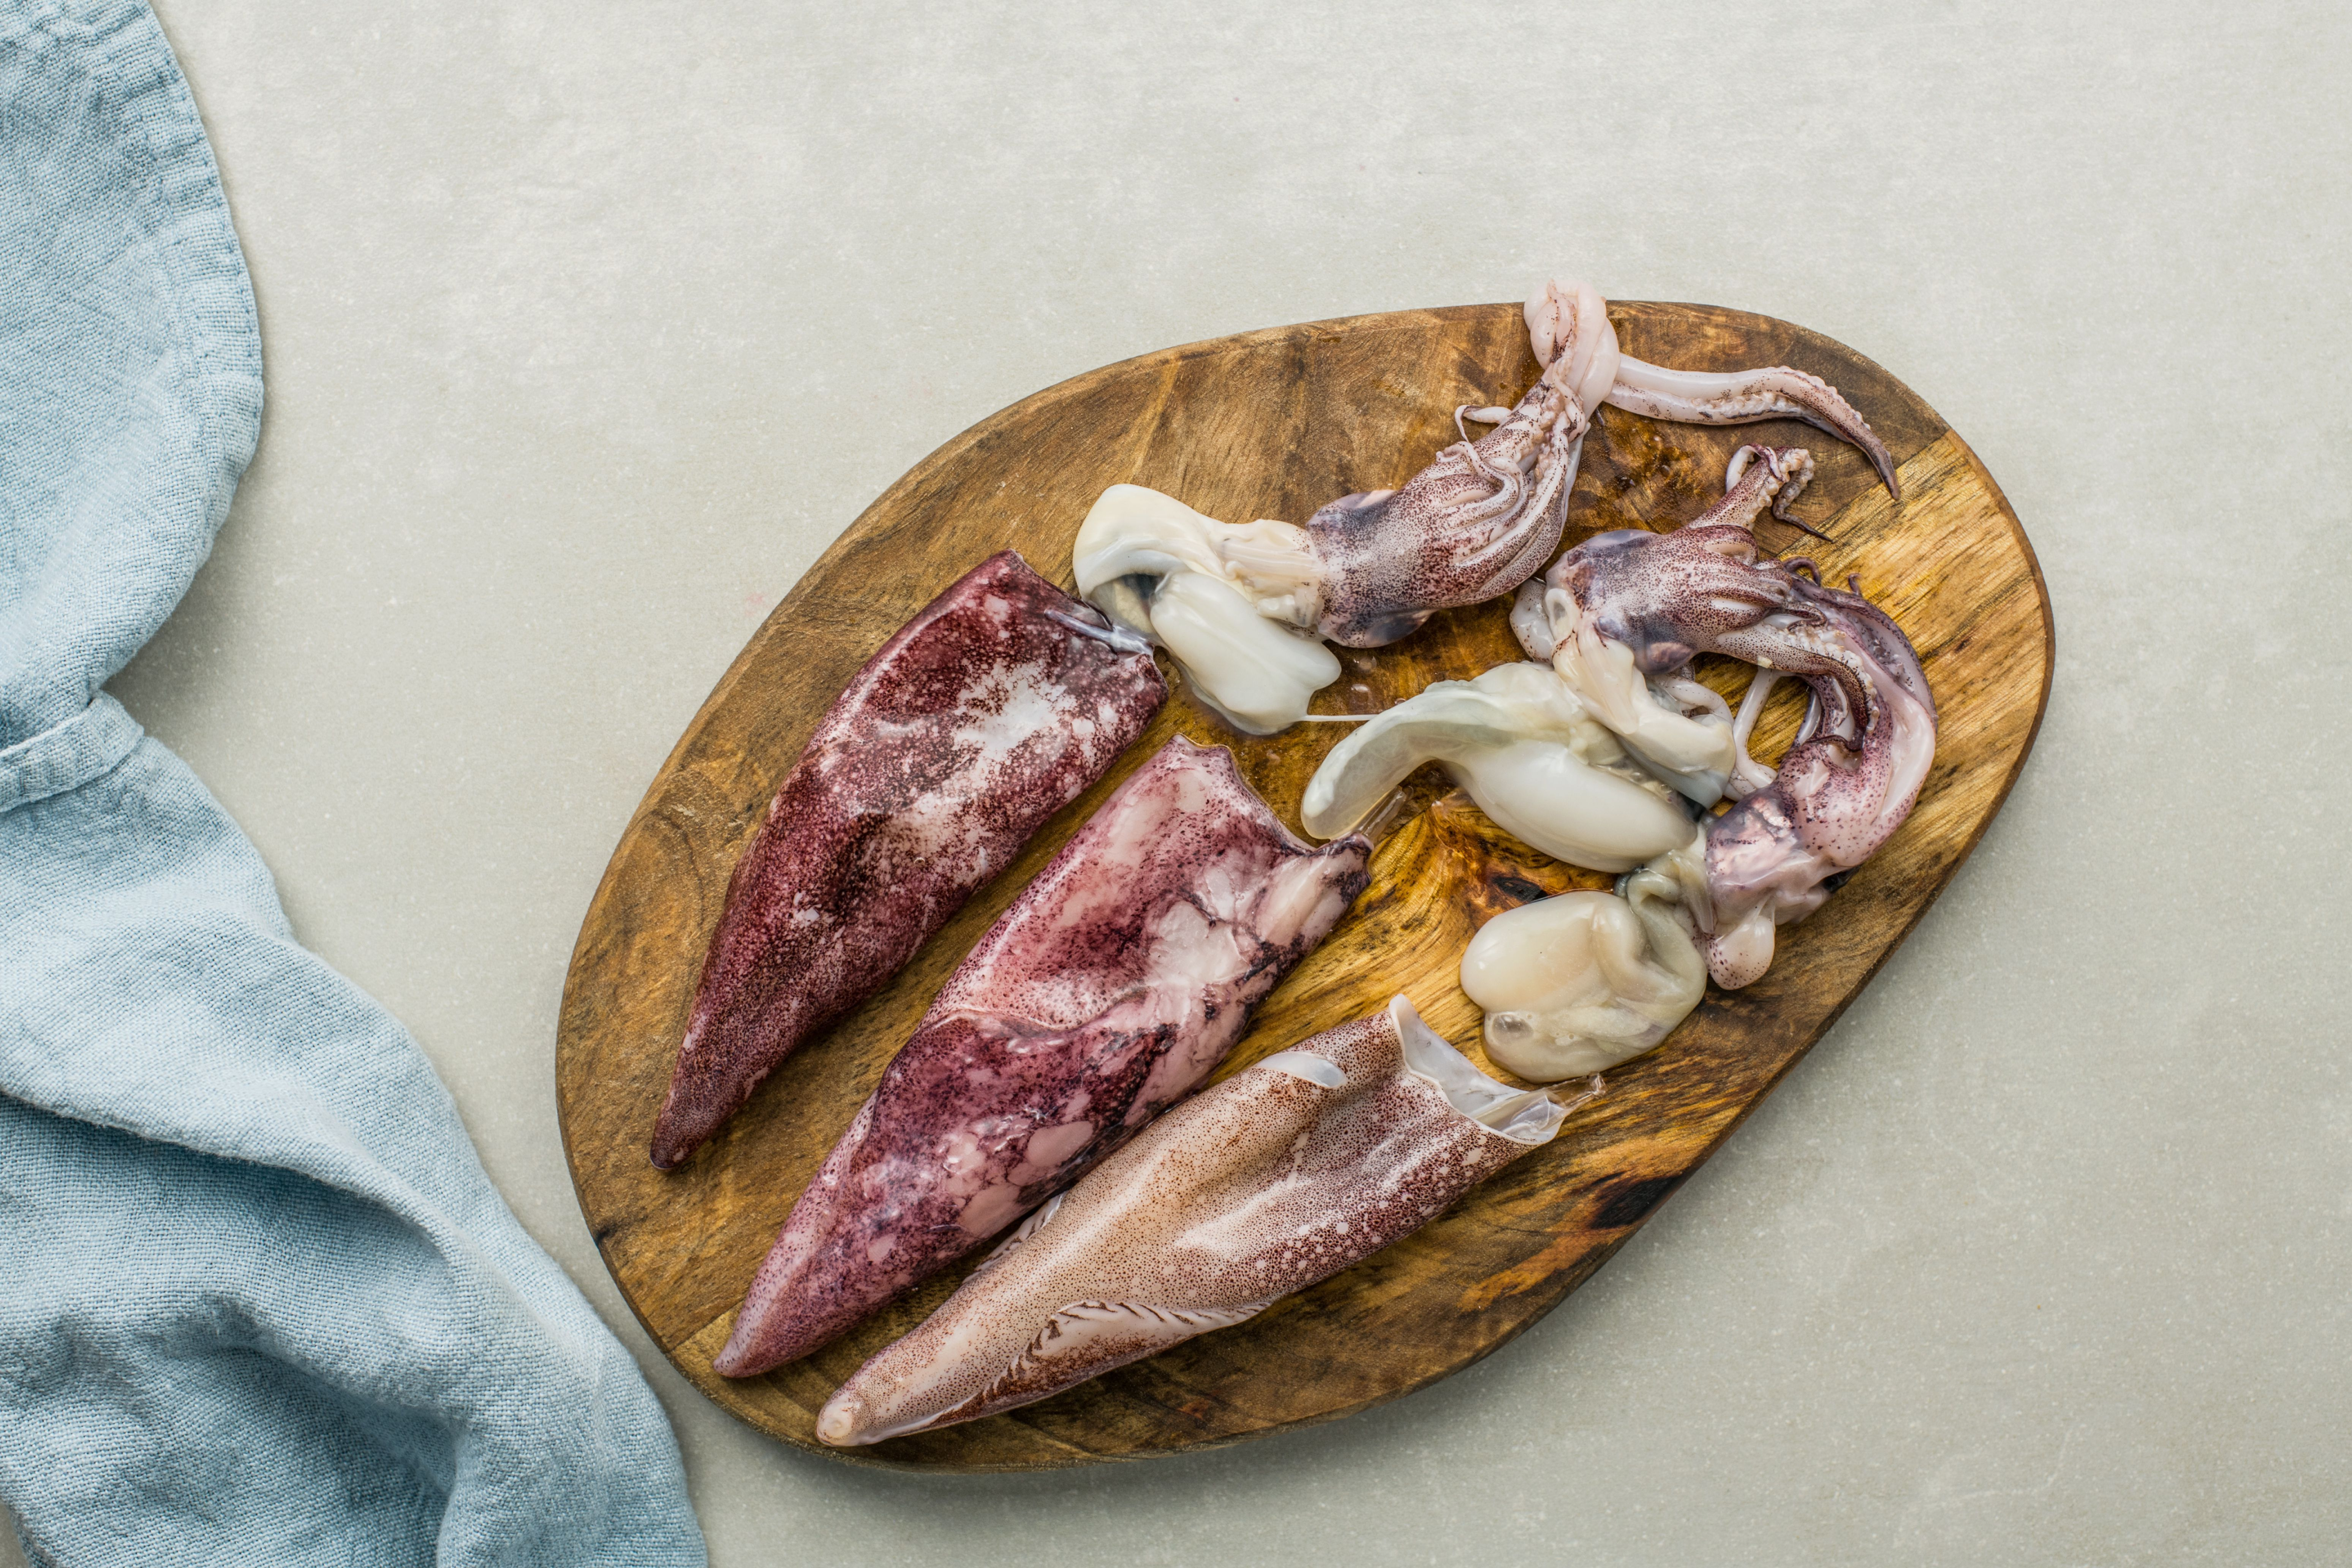 Squid with heads removed on cutting board